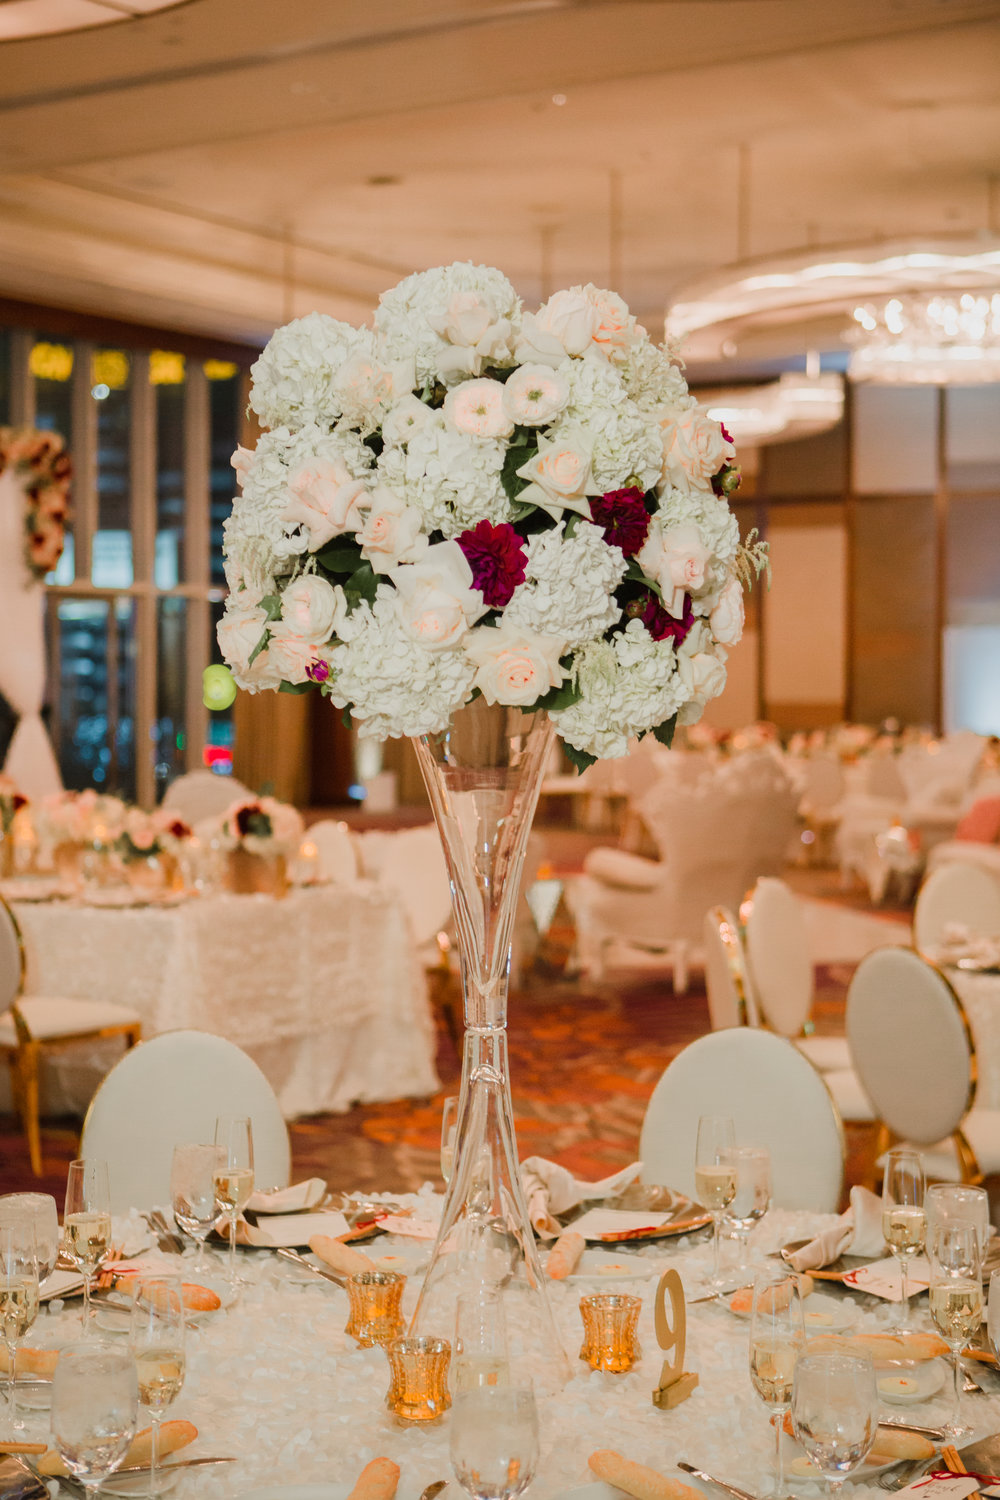 White hydrangea with pink roses and red dahlias.  Luxury wedding at the Mandarin Oriental with a color scheme of white, blush, and pops of wine red produced by Las Vegas Wedding Planner Andrea Eppolito with photos by Stephen Salazar Photography.